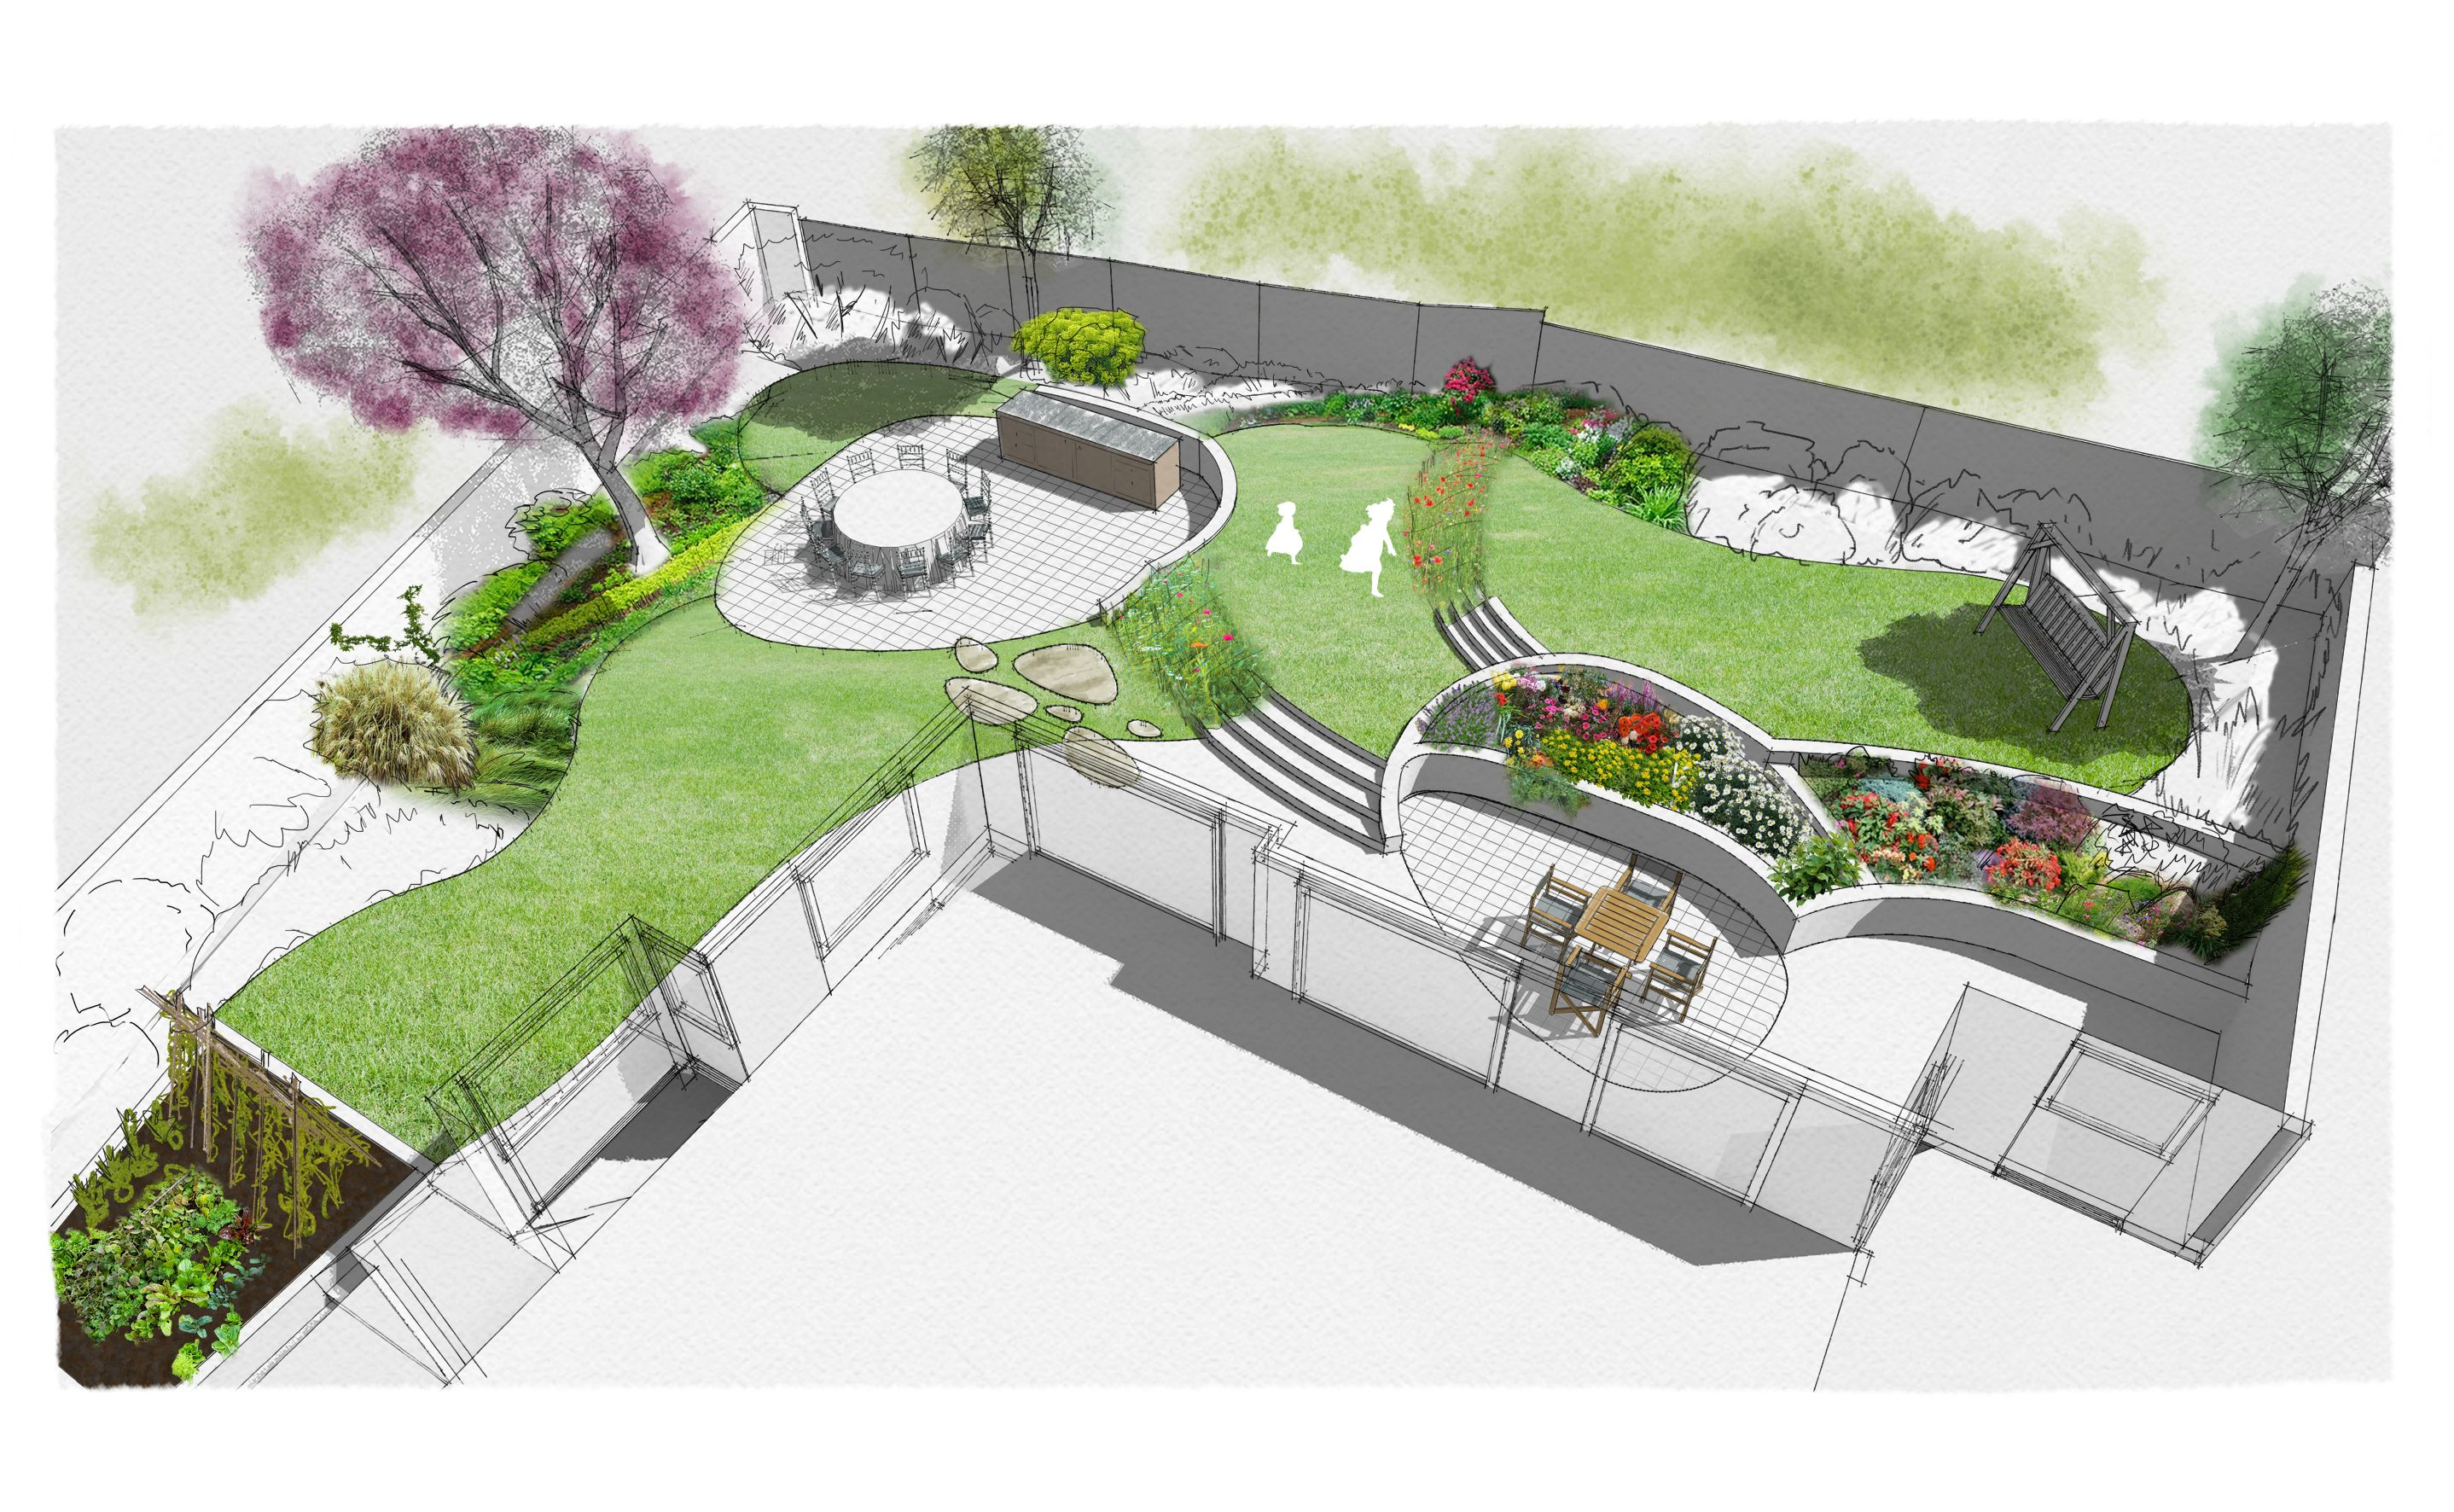 Garden Design Garden Planning Garden Landscaping Landscaping Architecture 3d Drawings Visualisations Illustration Perspective Drawing Design